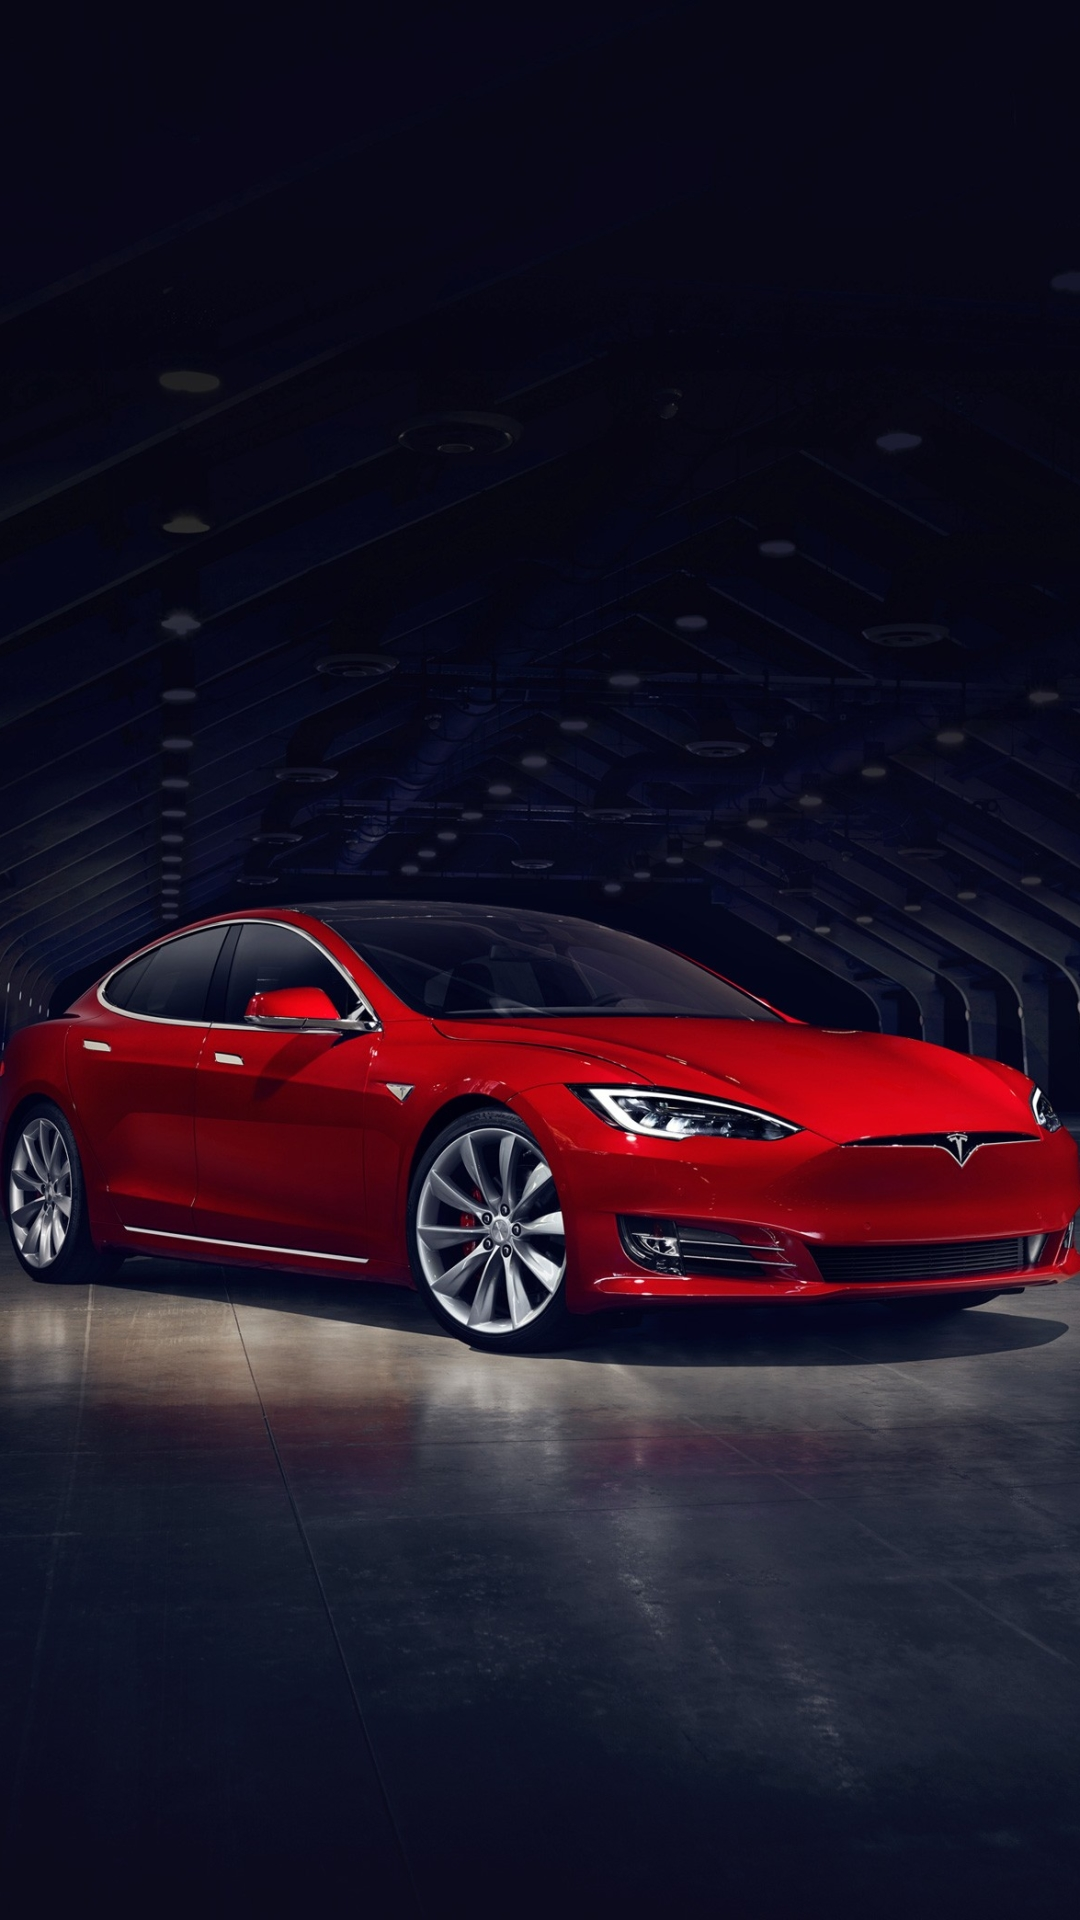 iPhone wallpaper Red Tesla Model S Tesla